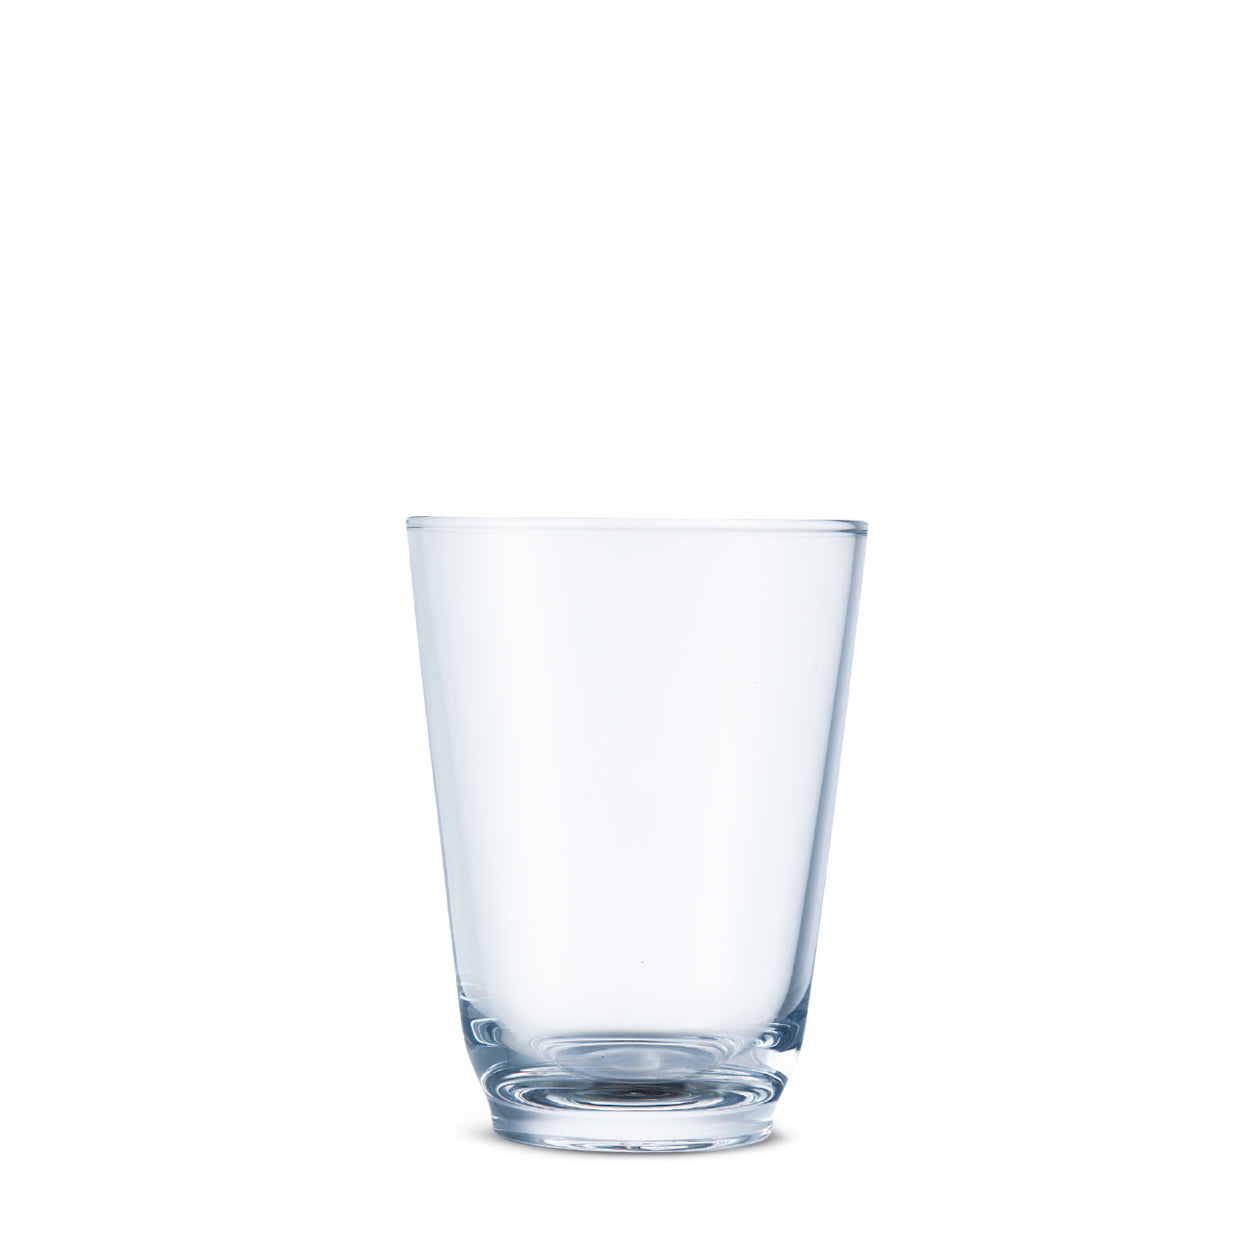 HIBI Tumbler glass clear